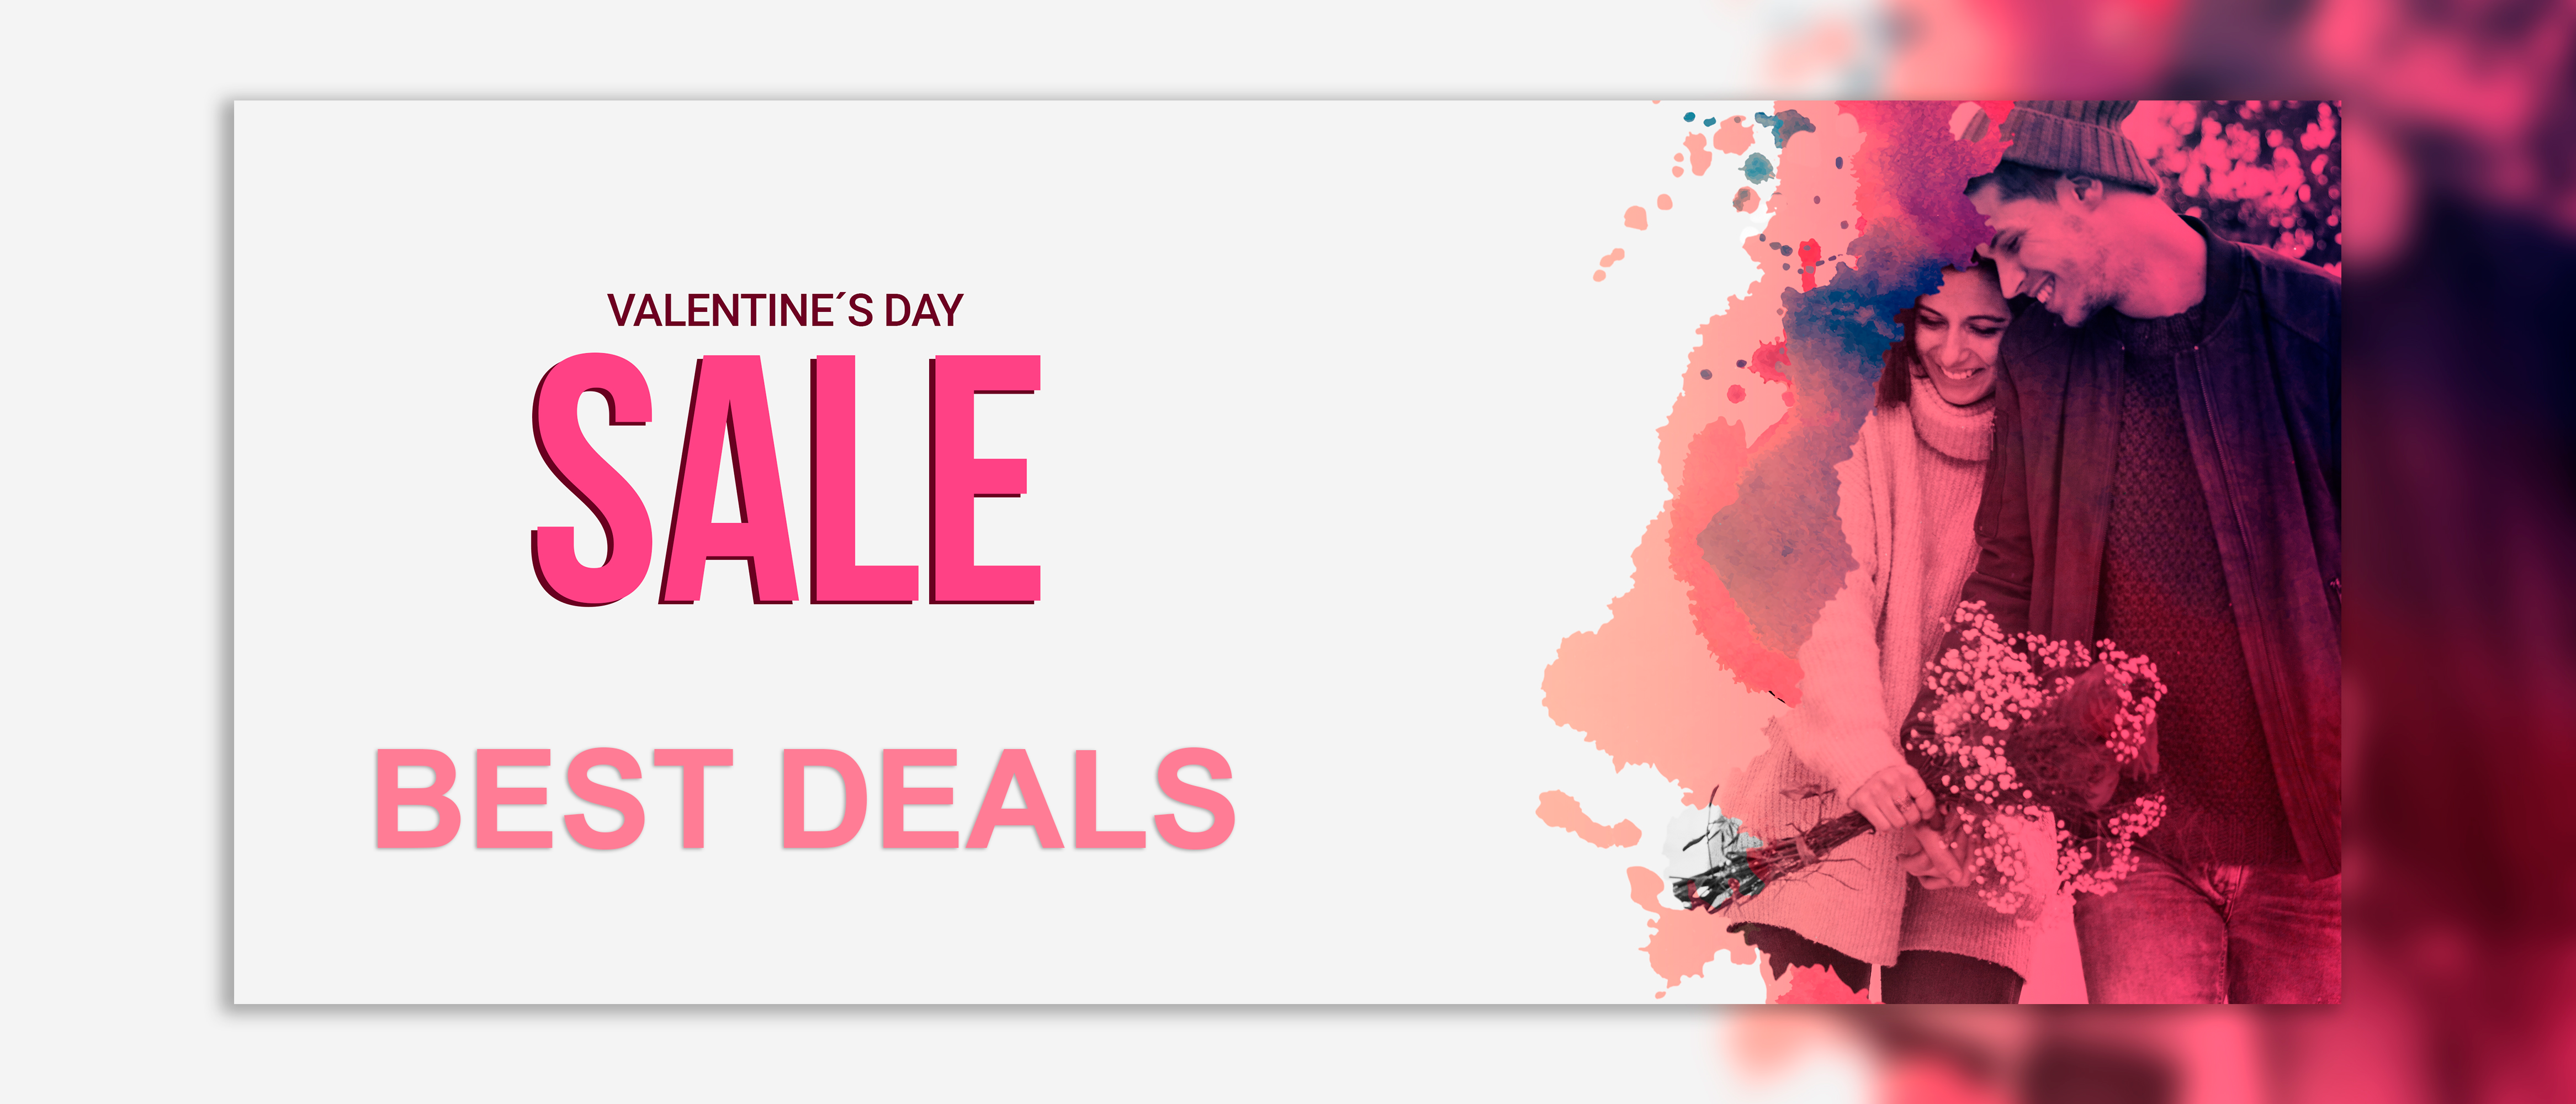 Don't miss the great deals on this Valentine's Day Sale